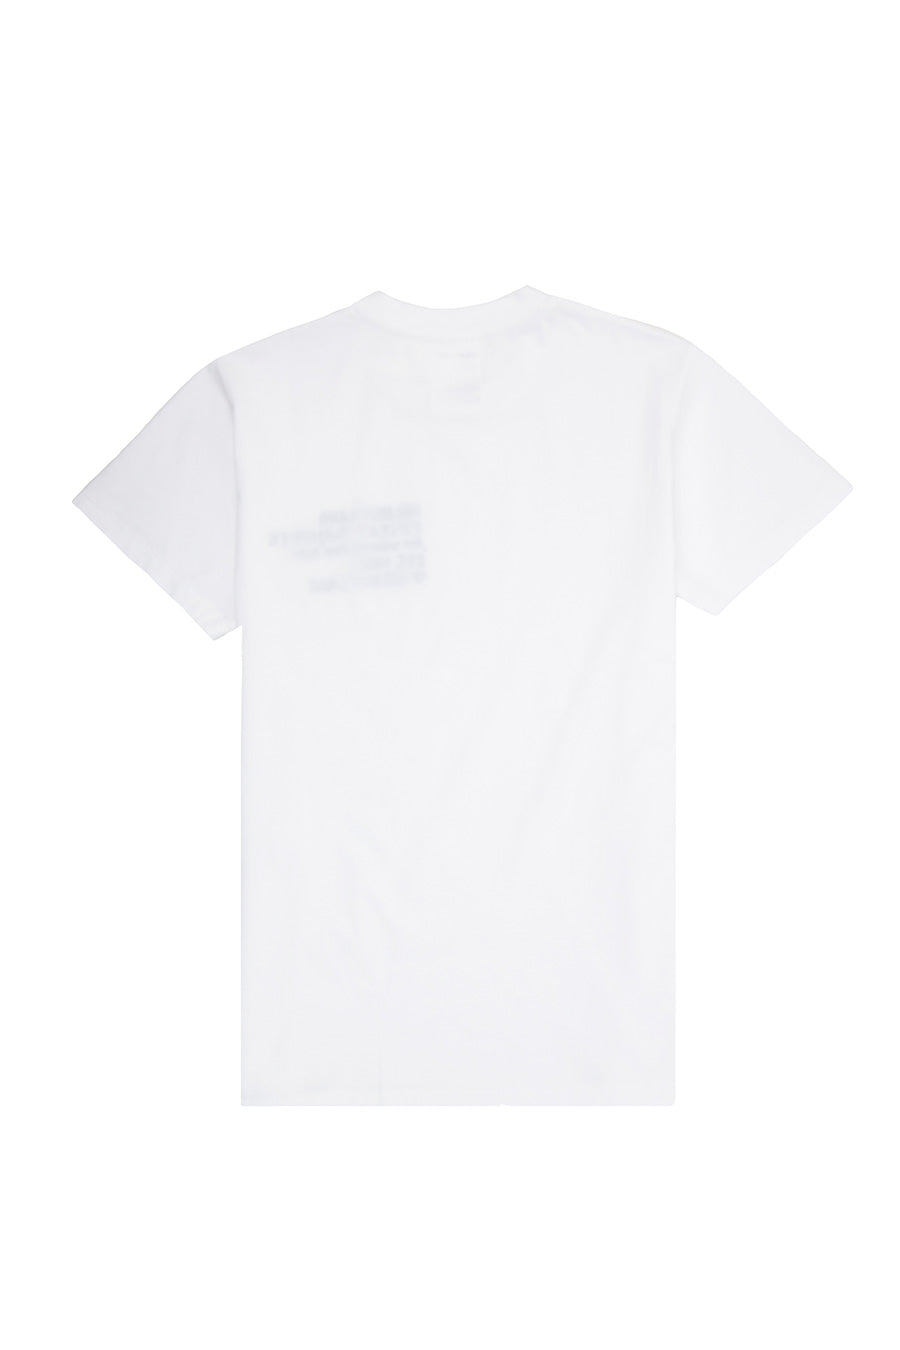 Helmut Lang - Chalk White Finest Standard T-Shirt | 1032 SPACE